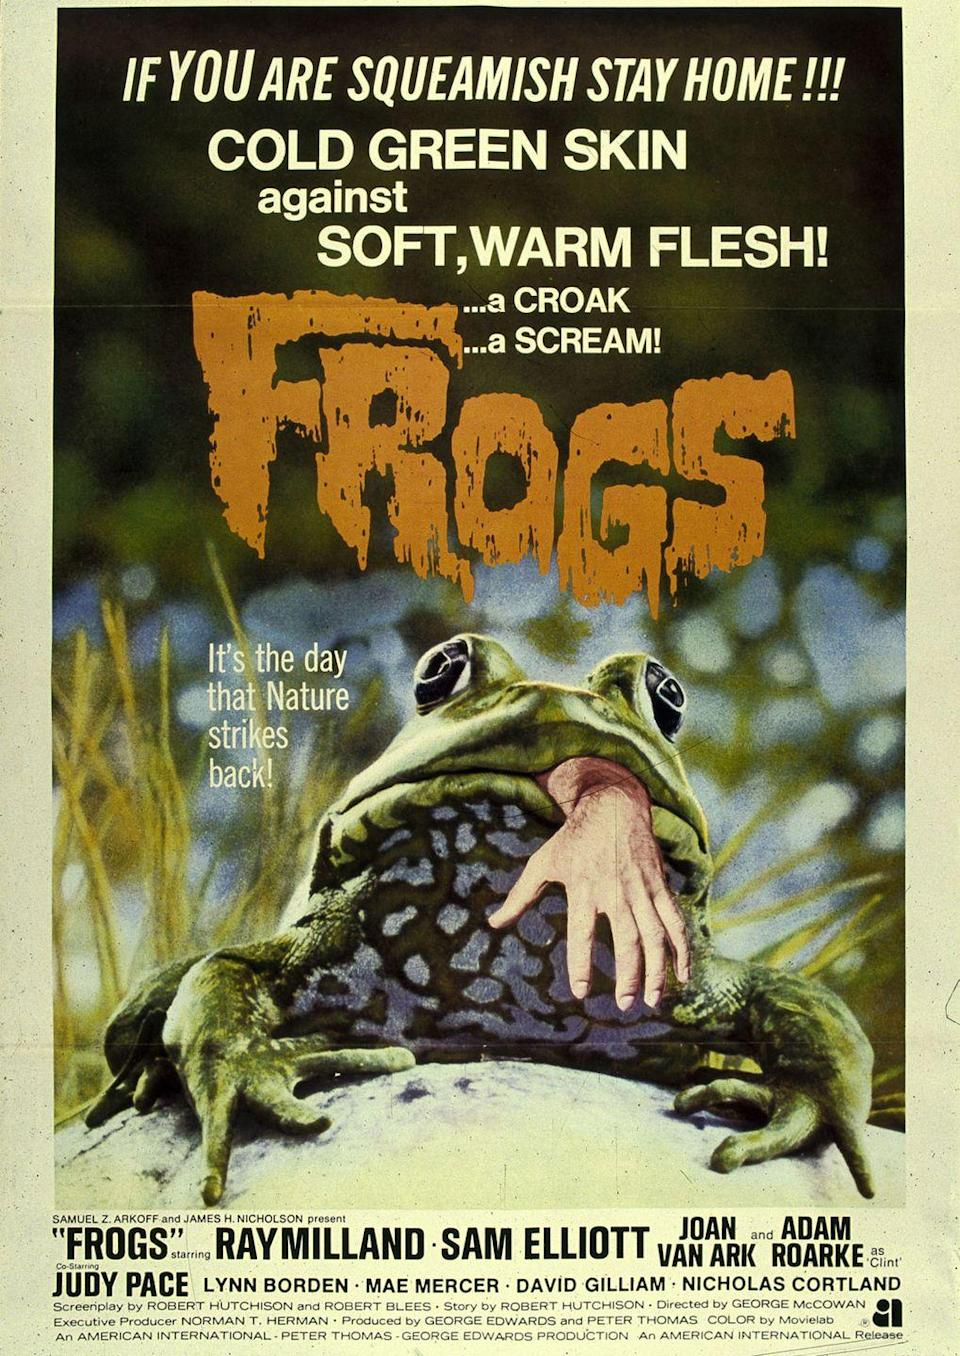 "<p>Frogs, man. Just straight-up frogs. Aside from being an actual movie about frog terror, this has the best poster text ever: ""If you are squeamish stay home!!! Cold green skin against soft, warm flesh! A croak. A scream!"" Apparently frogs were an issue that needed to be put on the table in 1972. </p>"